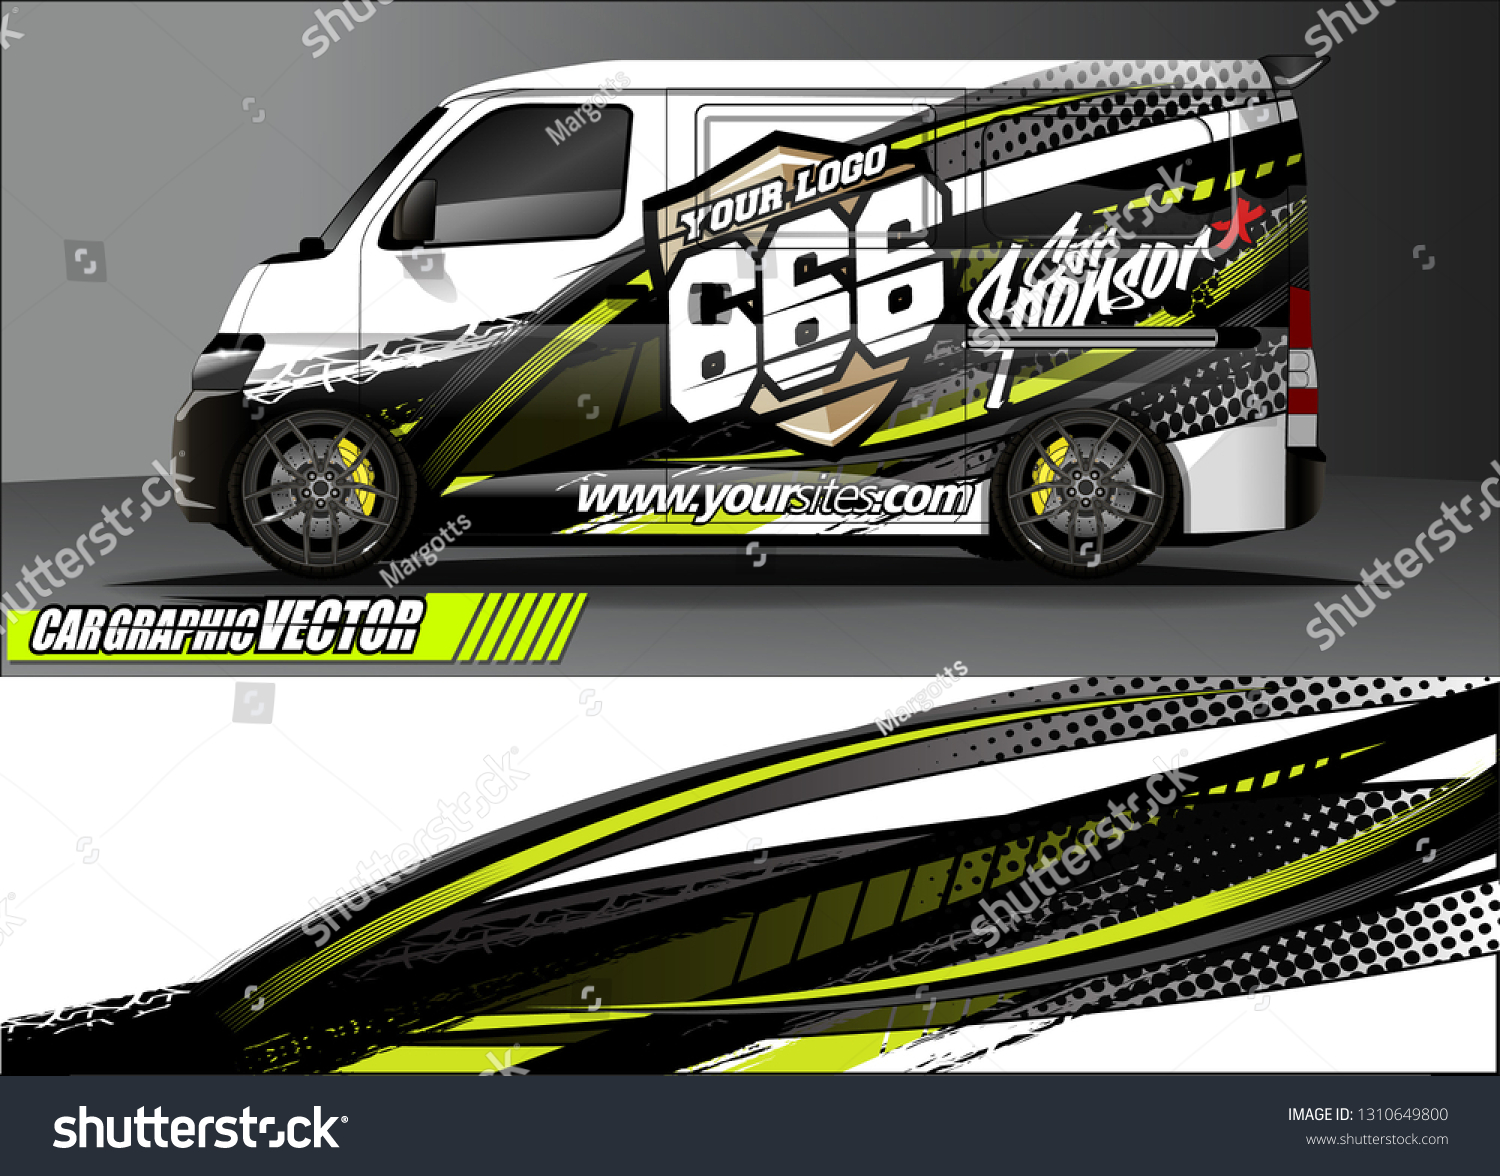 Van sticker decal design simple lines with abstract background vector concept for vehicle vinyl wrap